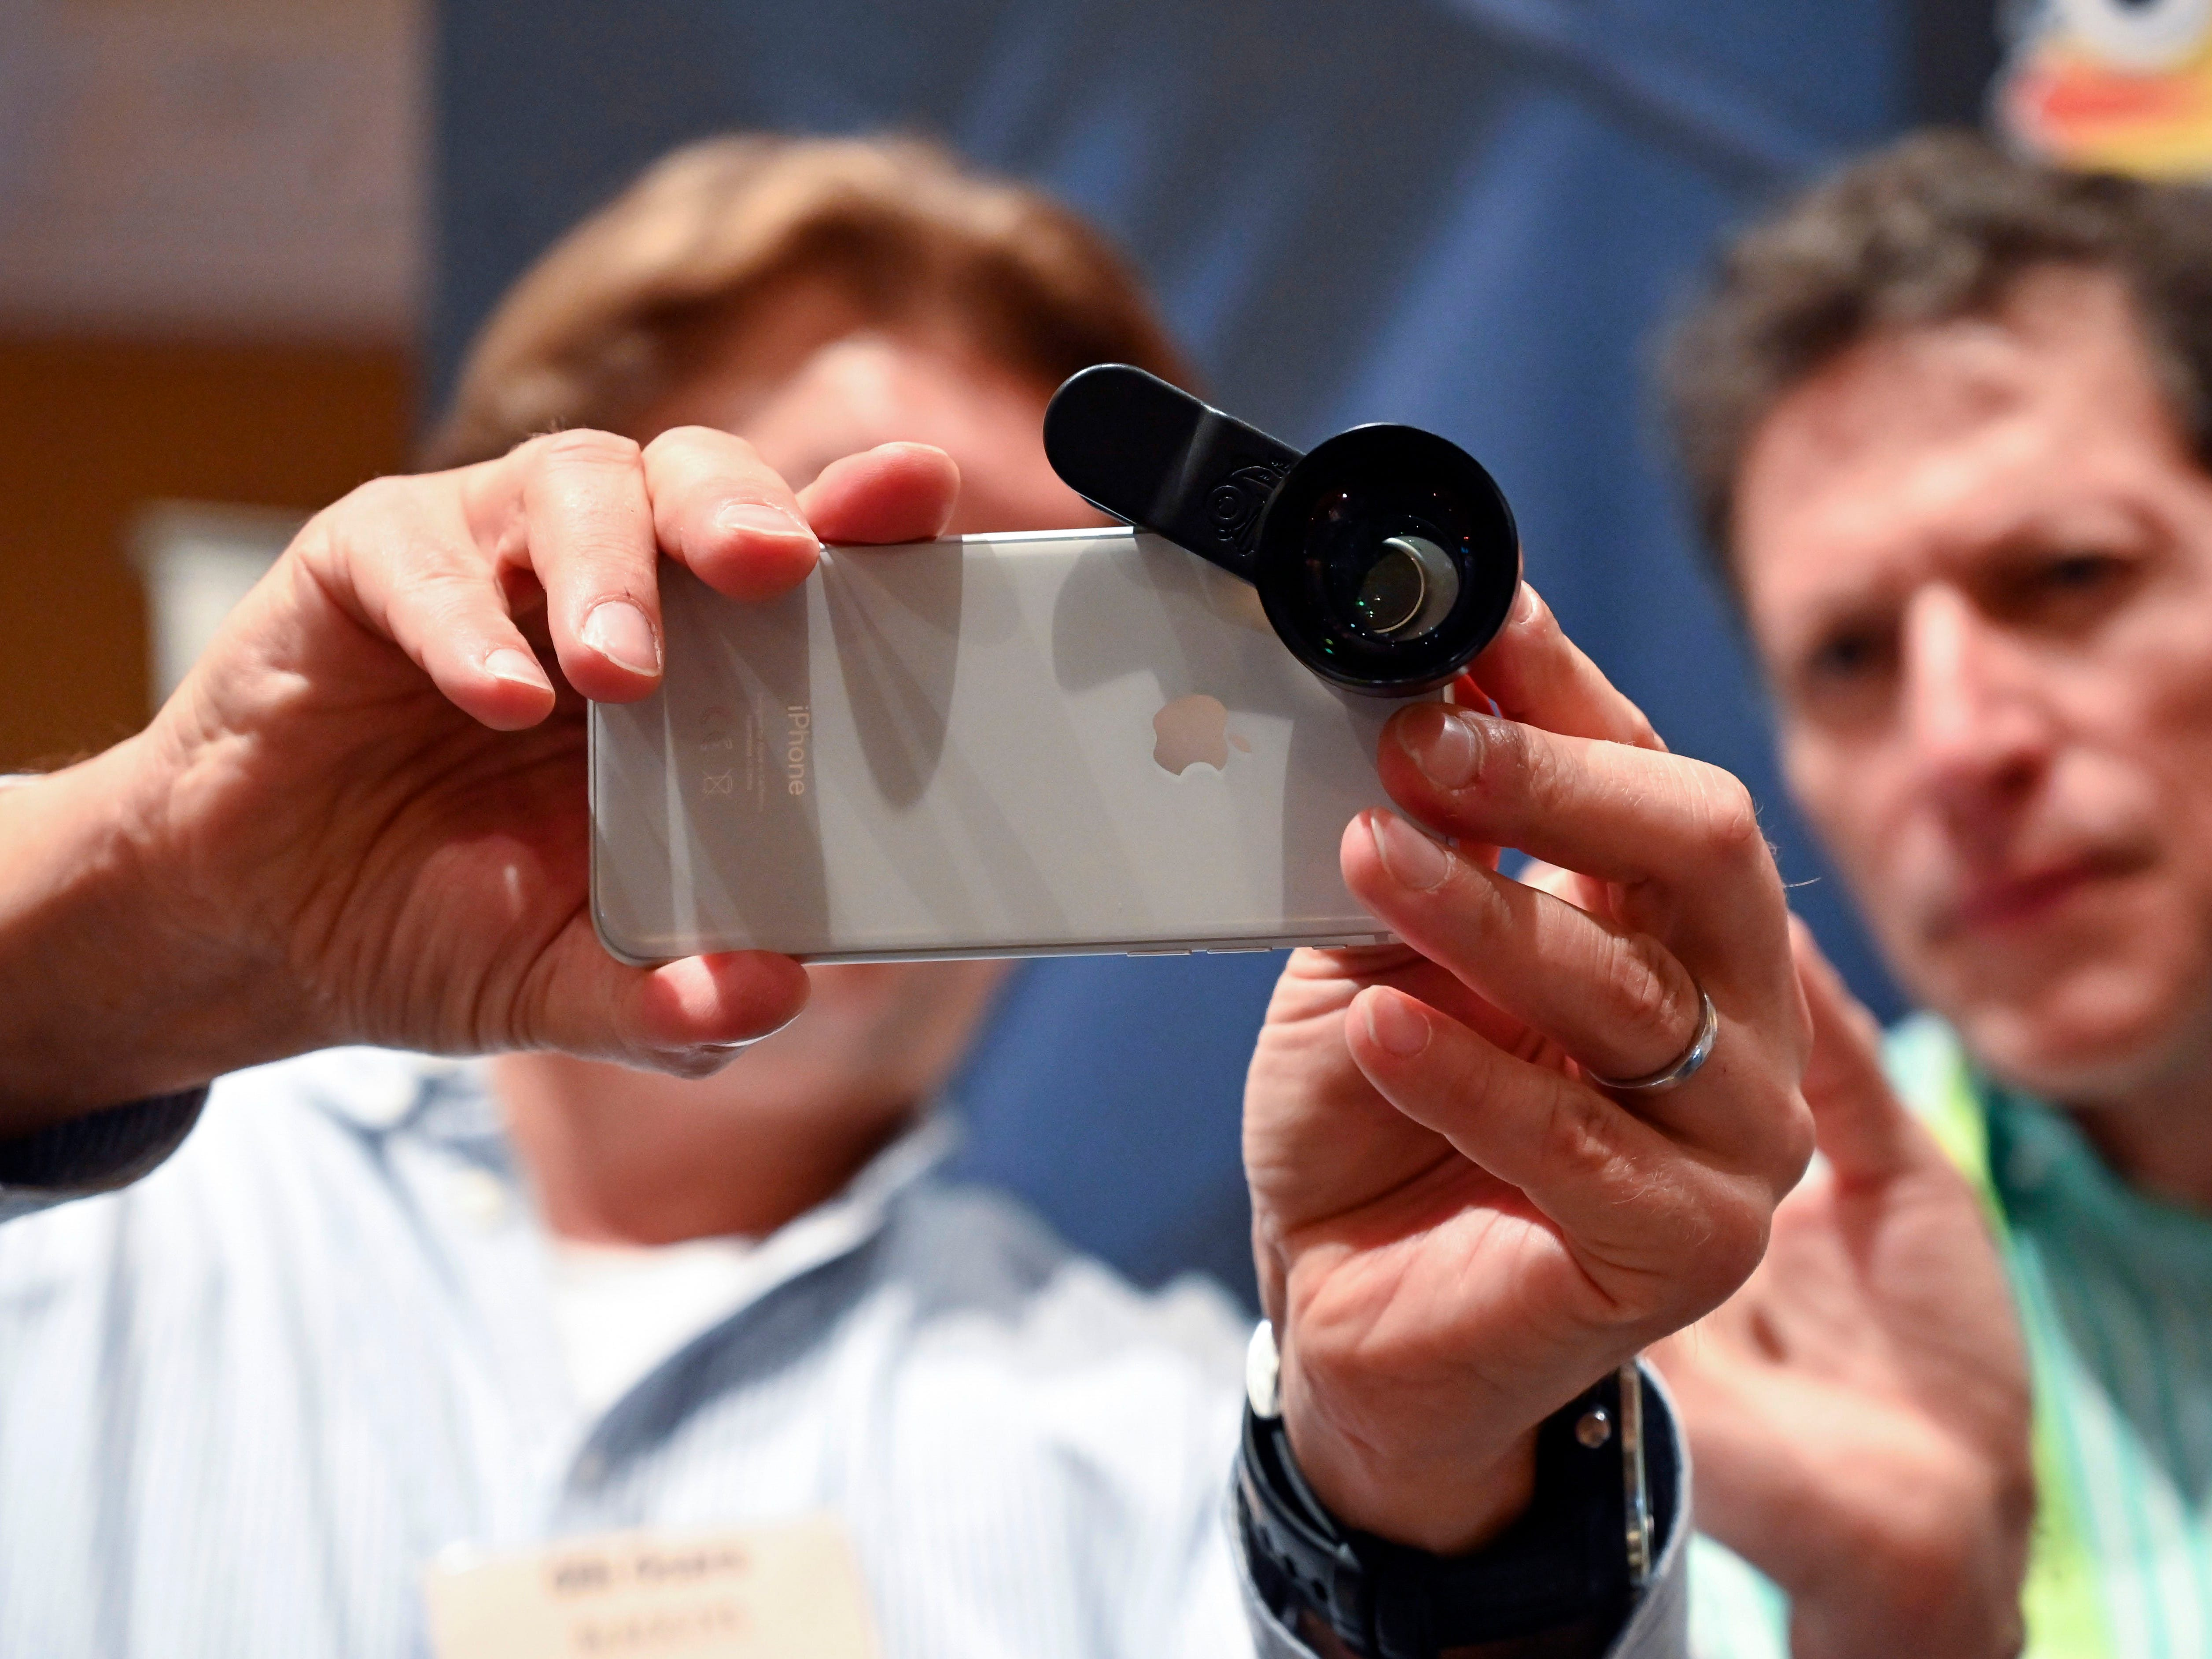 Olli Osara demonstrates a clip on lens for cellphone to Arnie Weissmann at the Black Eye booth.